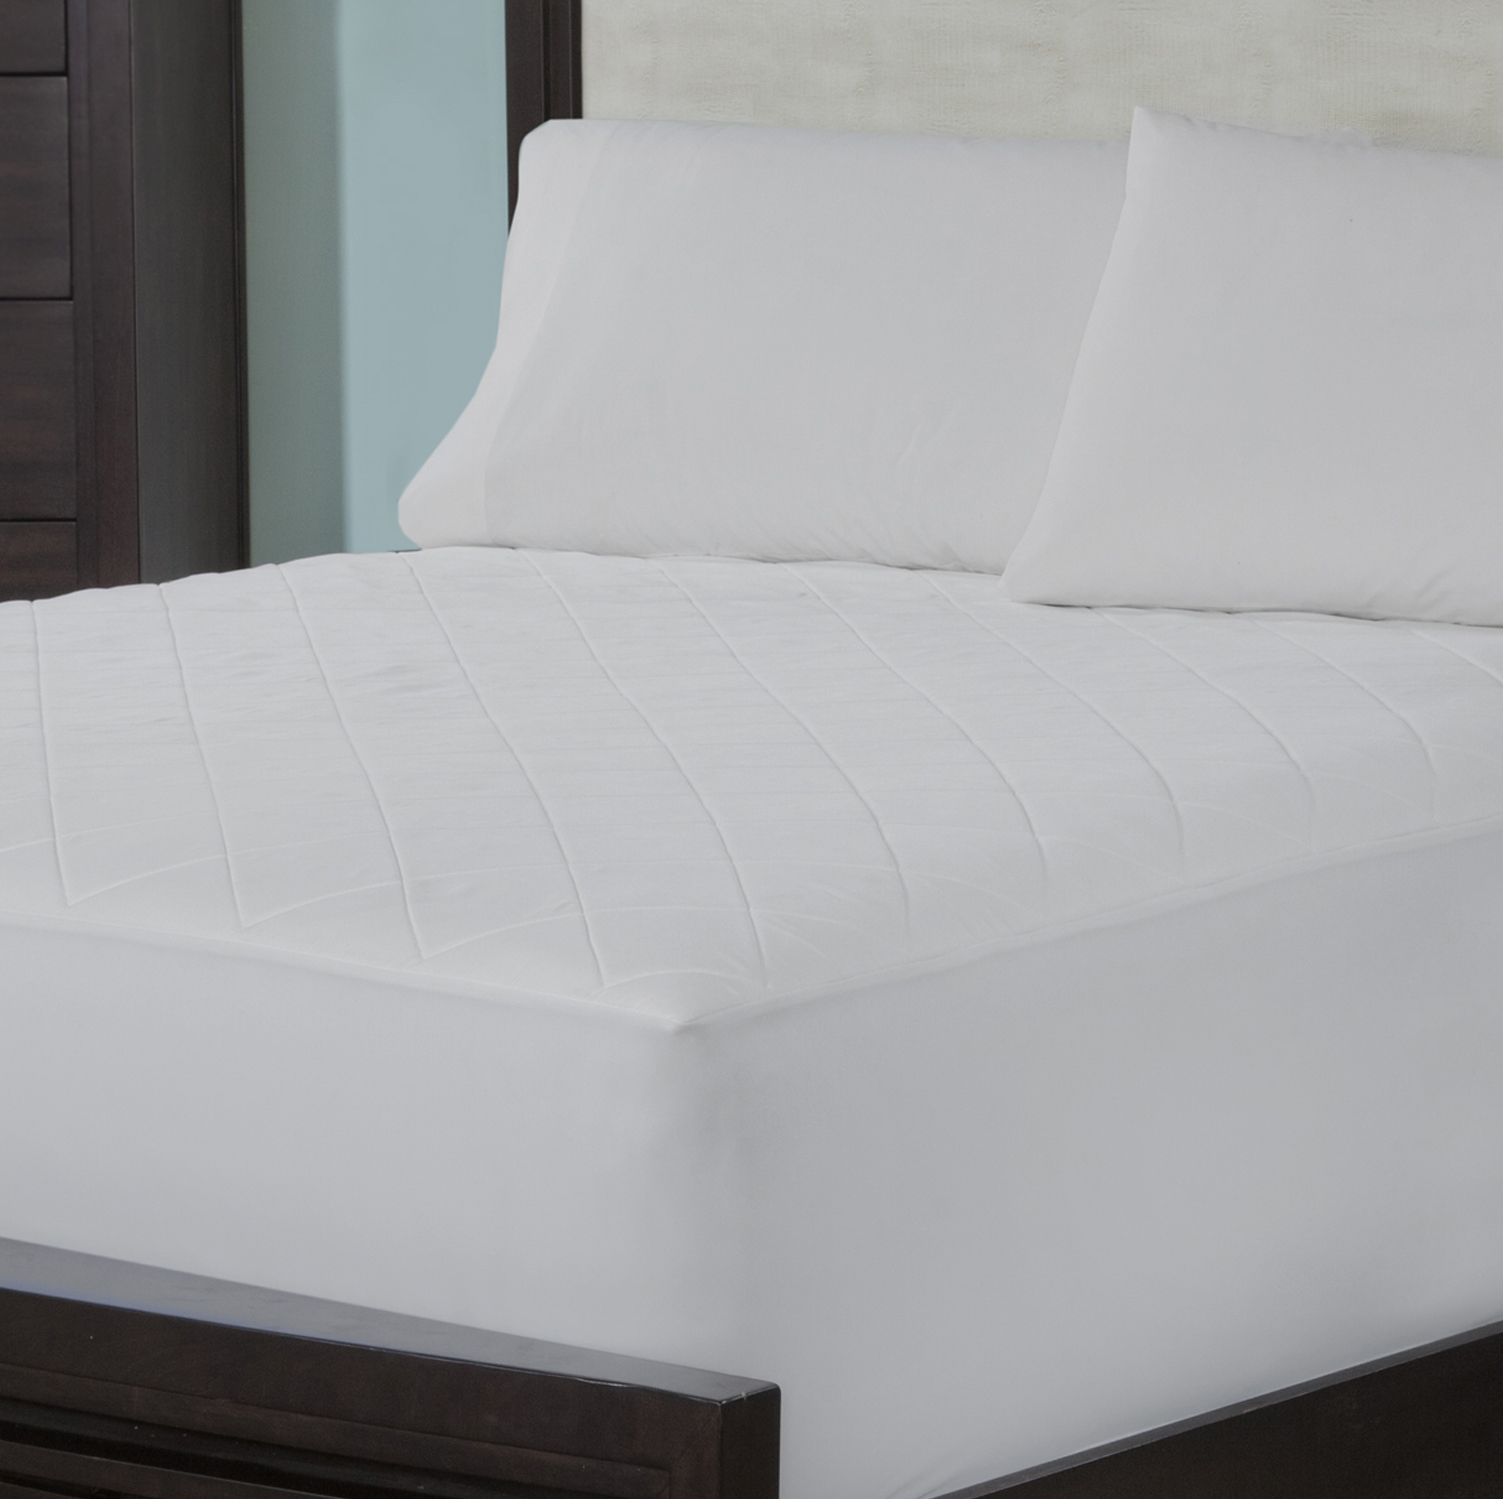 Wellrest quilted memory foam mattress pad twin Memory foam mattress topper twin